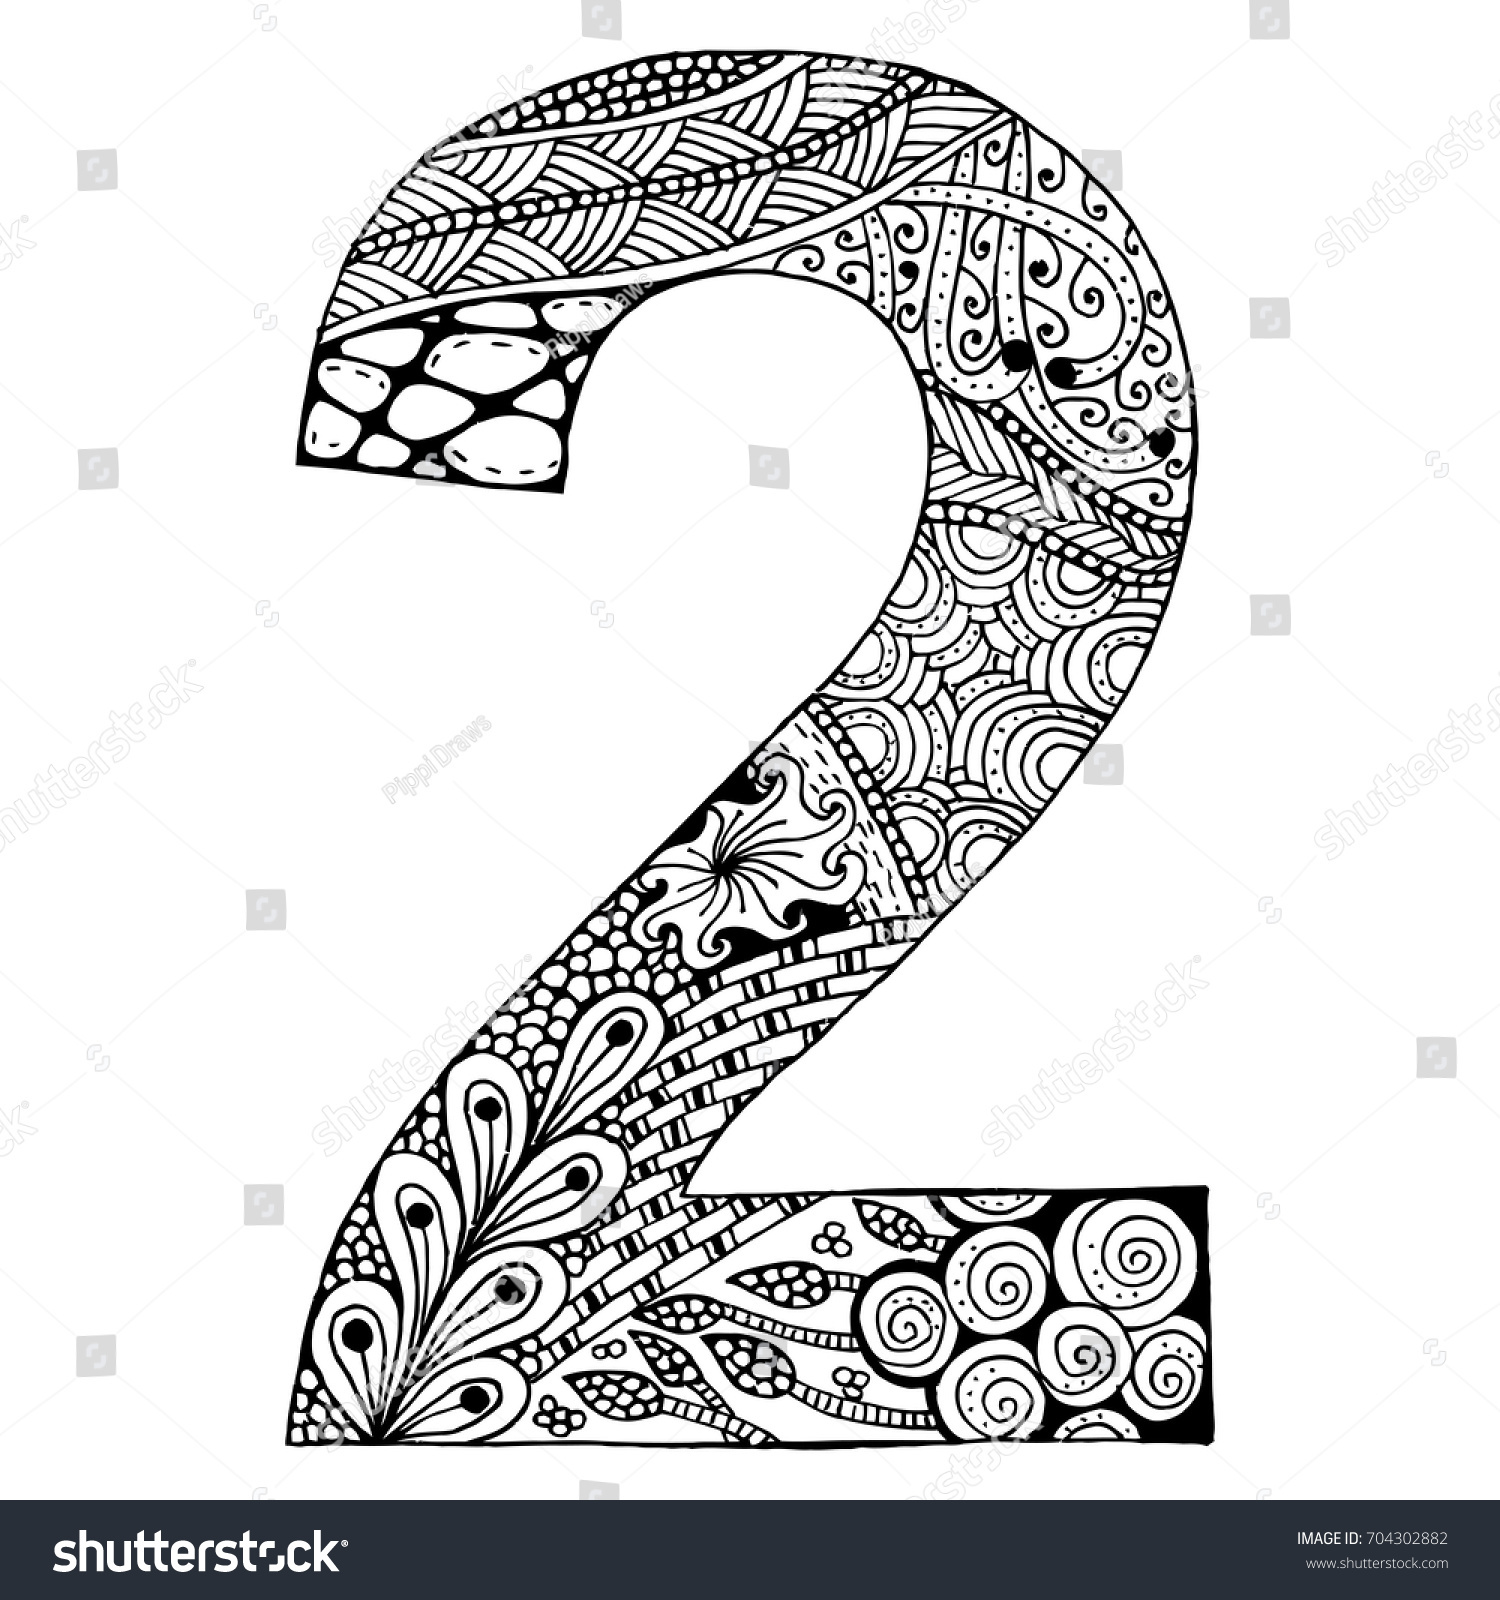 Zentangle Stylized Alphabetnumber 2 Doodle Style Stock